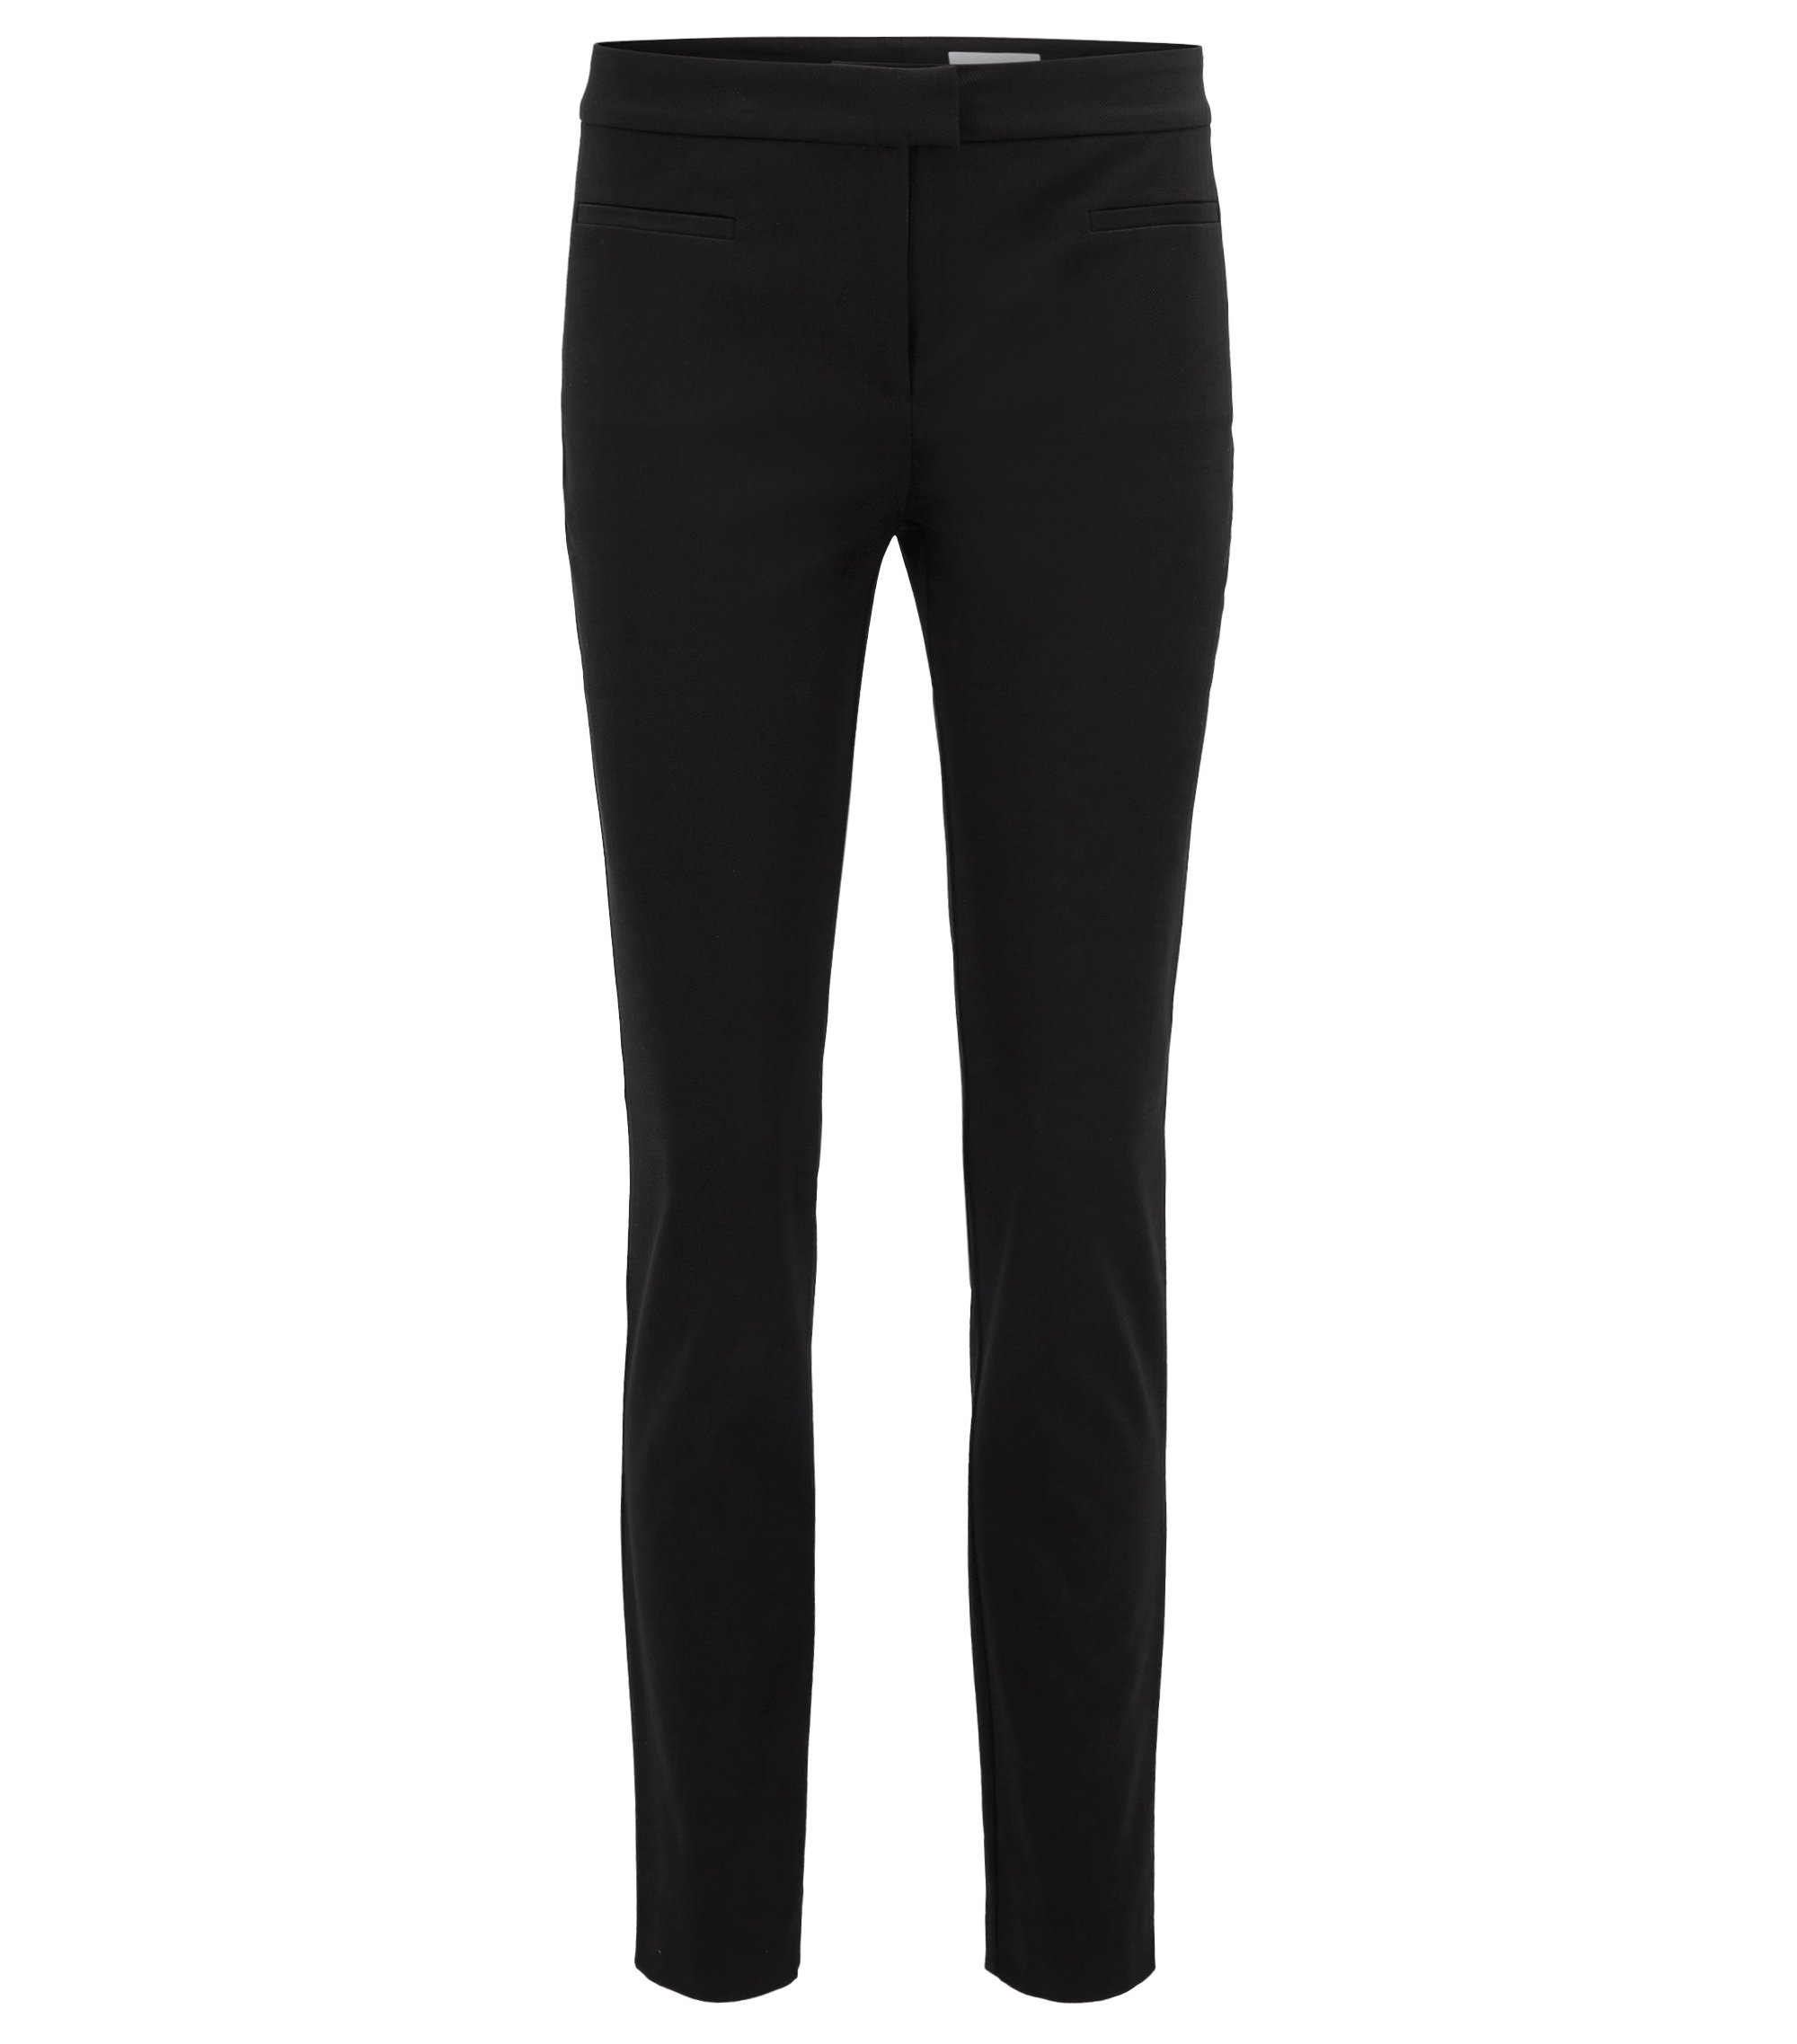 Pantalon Slim Fit raccourci en coton stretch, Noir